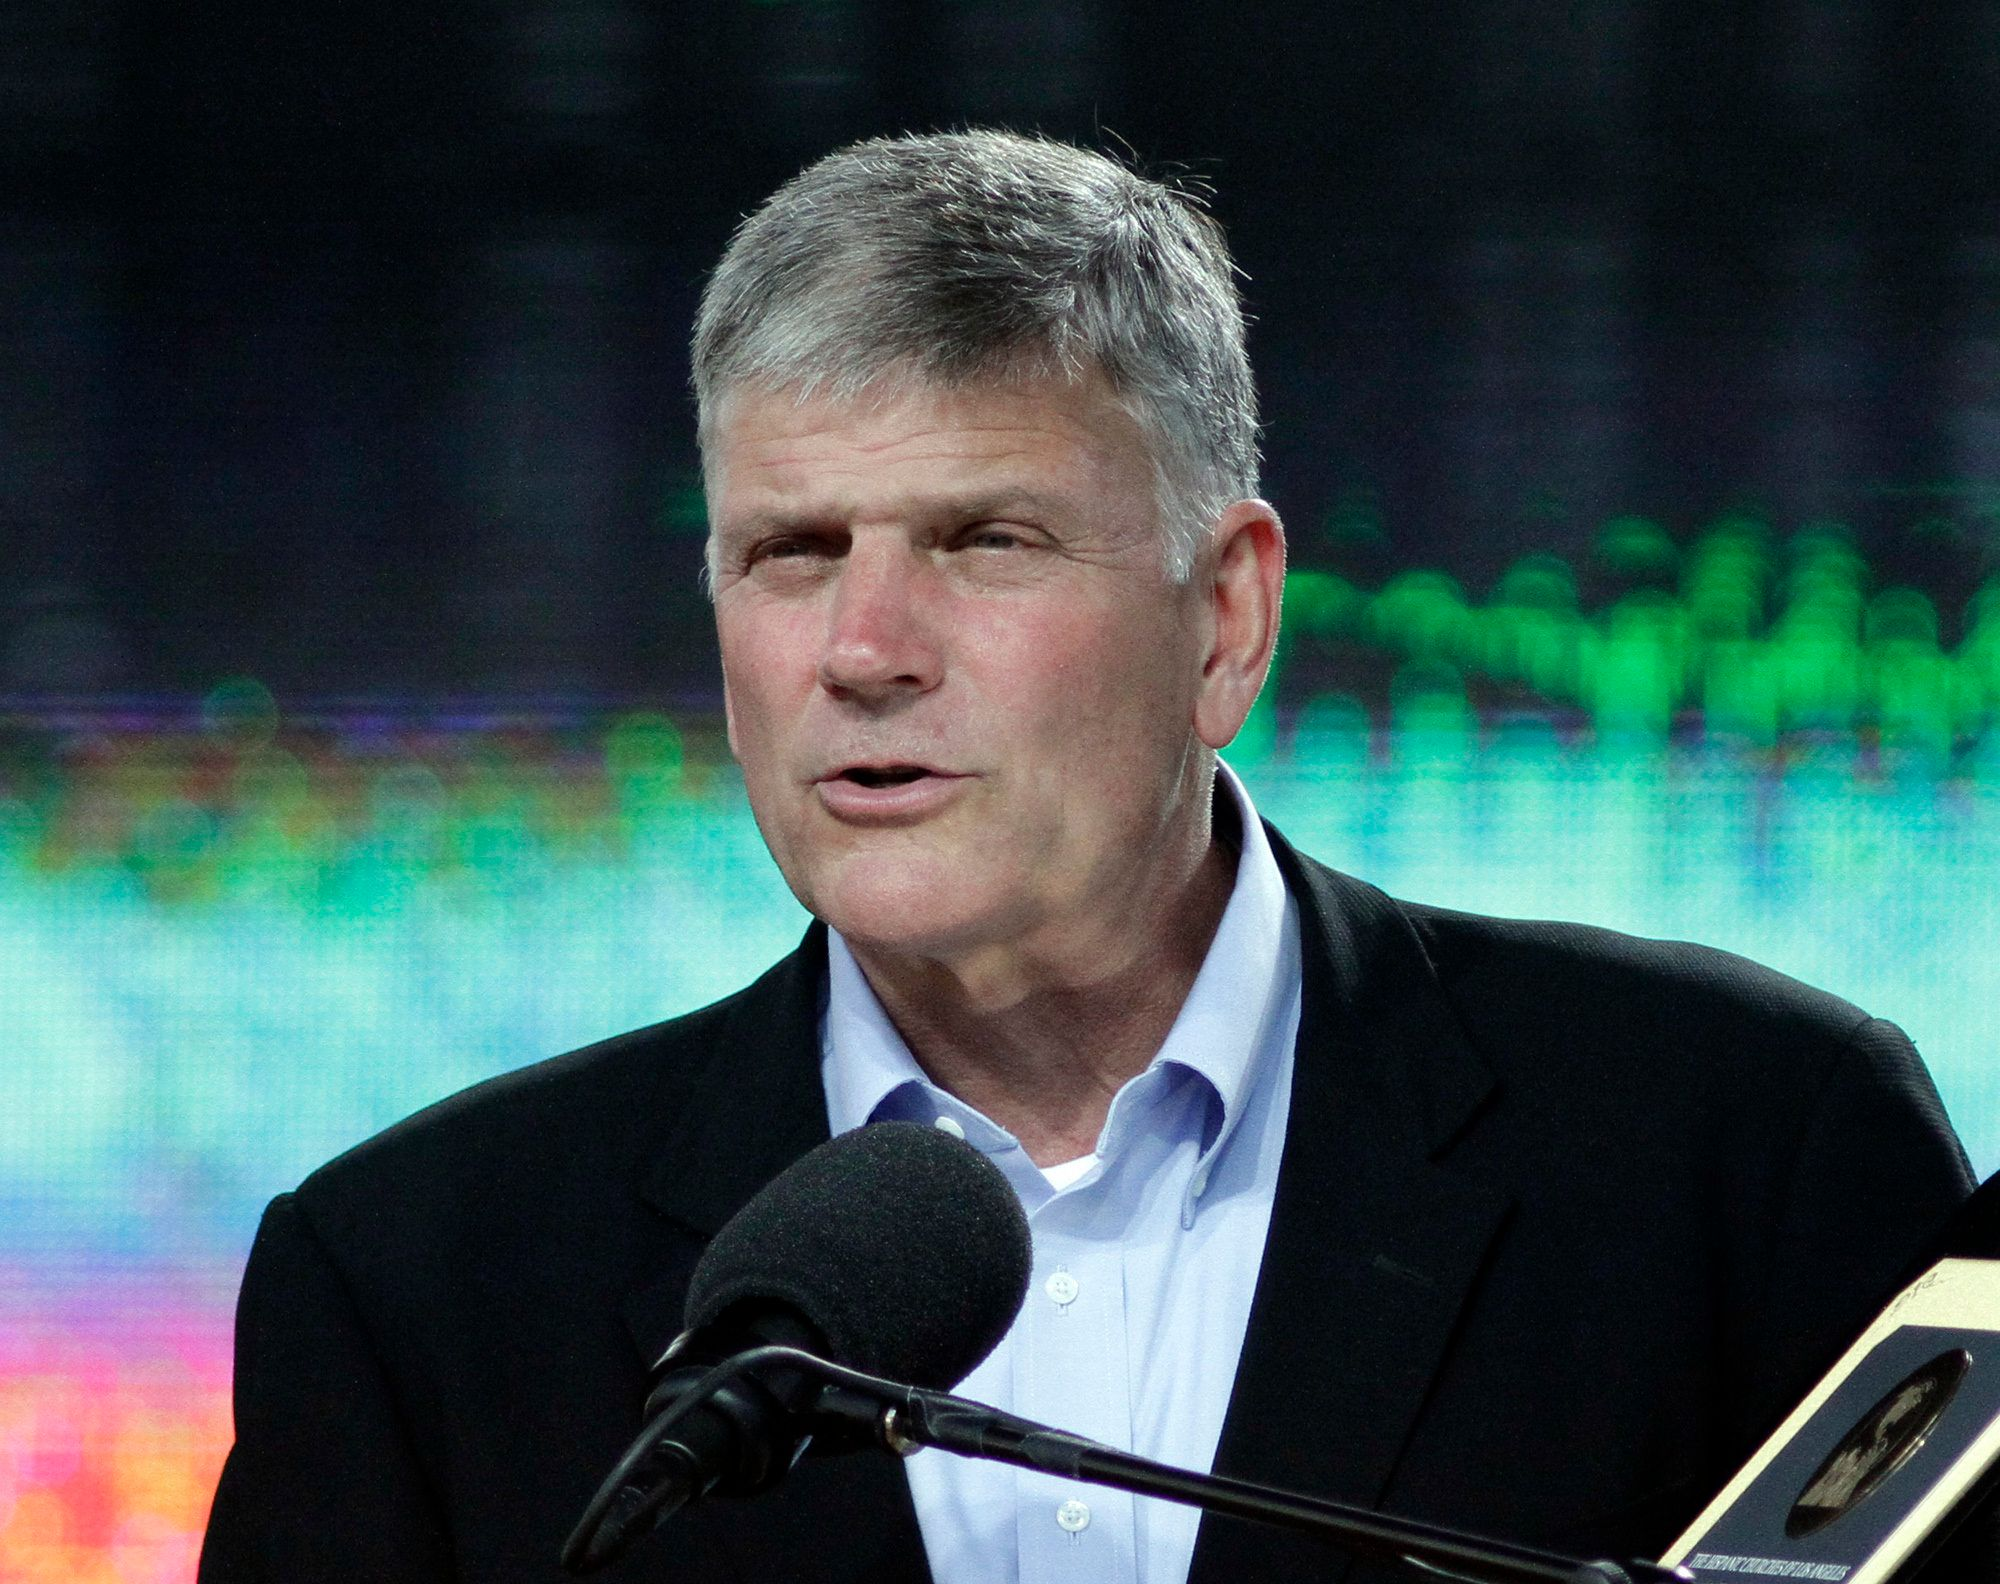 Franklin Graham speaking to the audience. Evengelist Franklin Graham concludes a two–day Festival of Hope at L.A.'s Home Depot Center on Jun. 26, 2011.  (Photo by Lawrence K. Ho/Los Angeles Times via Getty Images)